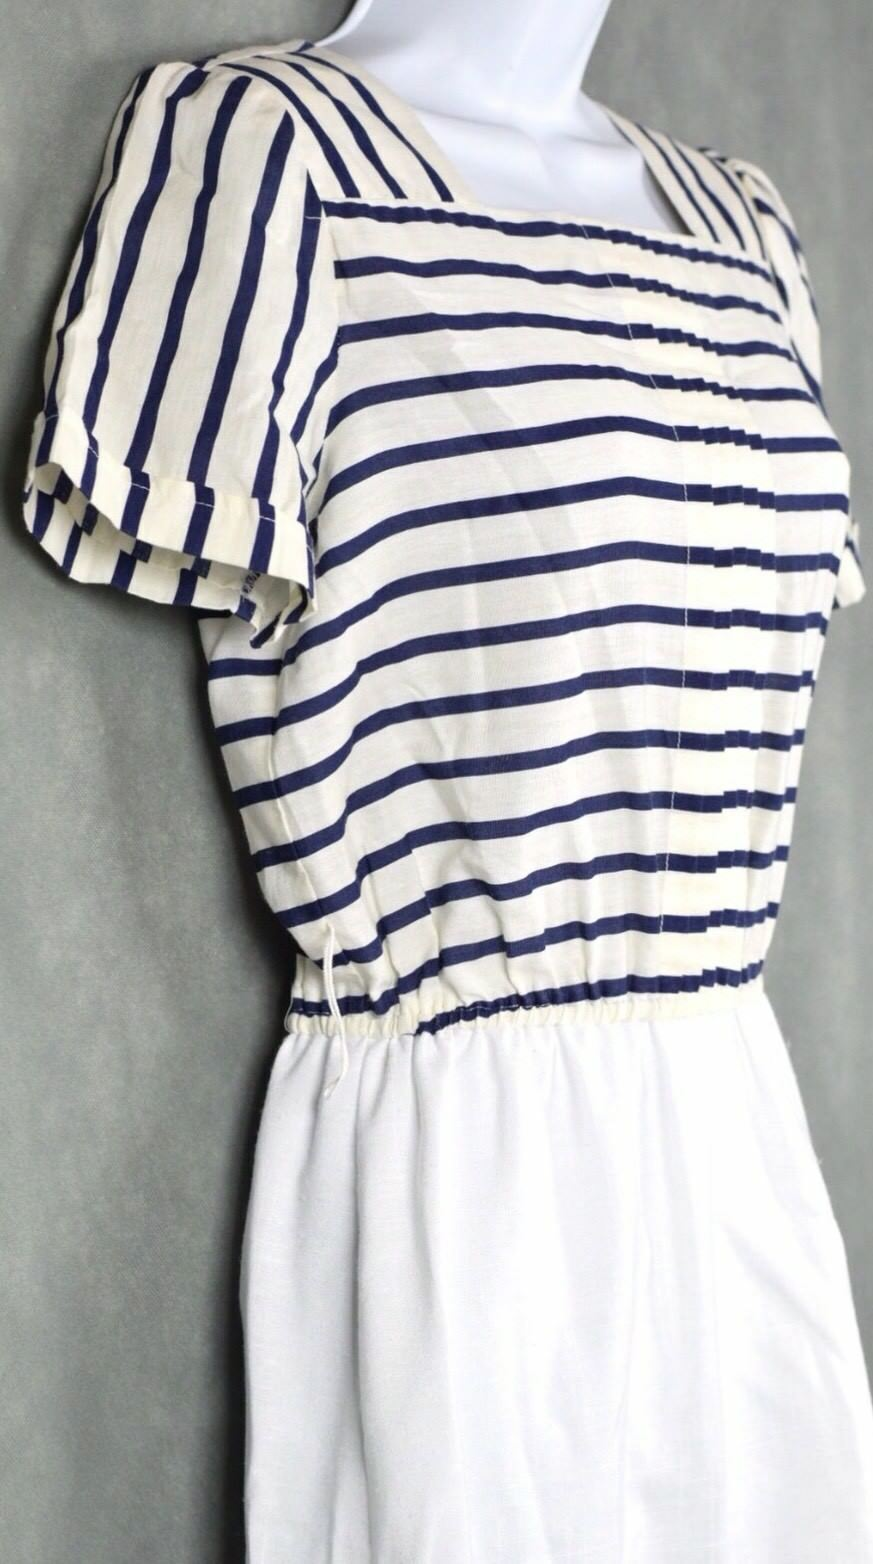 Vintage No Brand White And Blue Dress Lot Size 12 - image 7